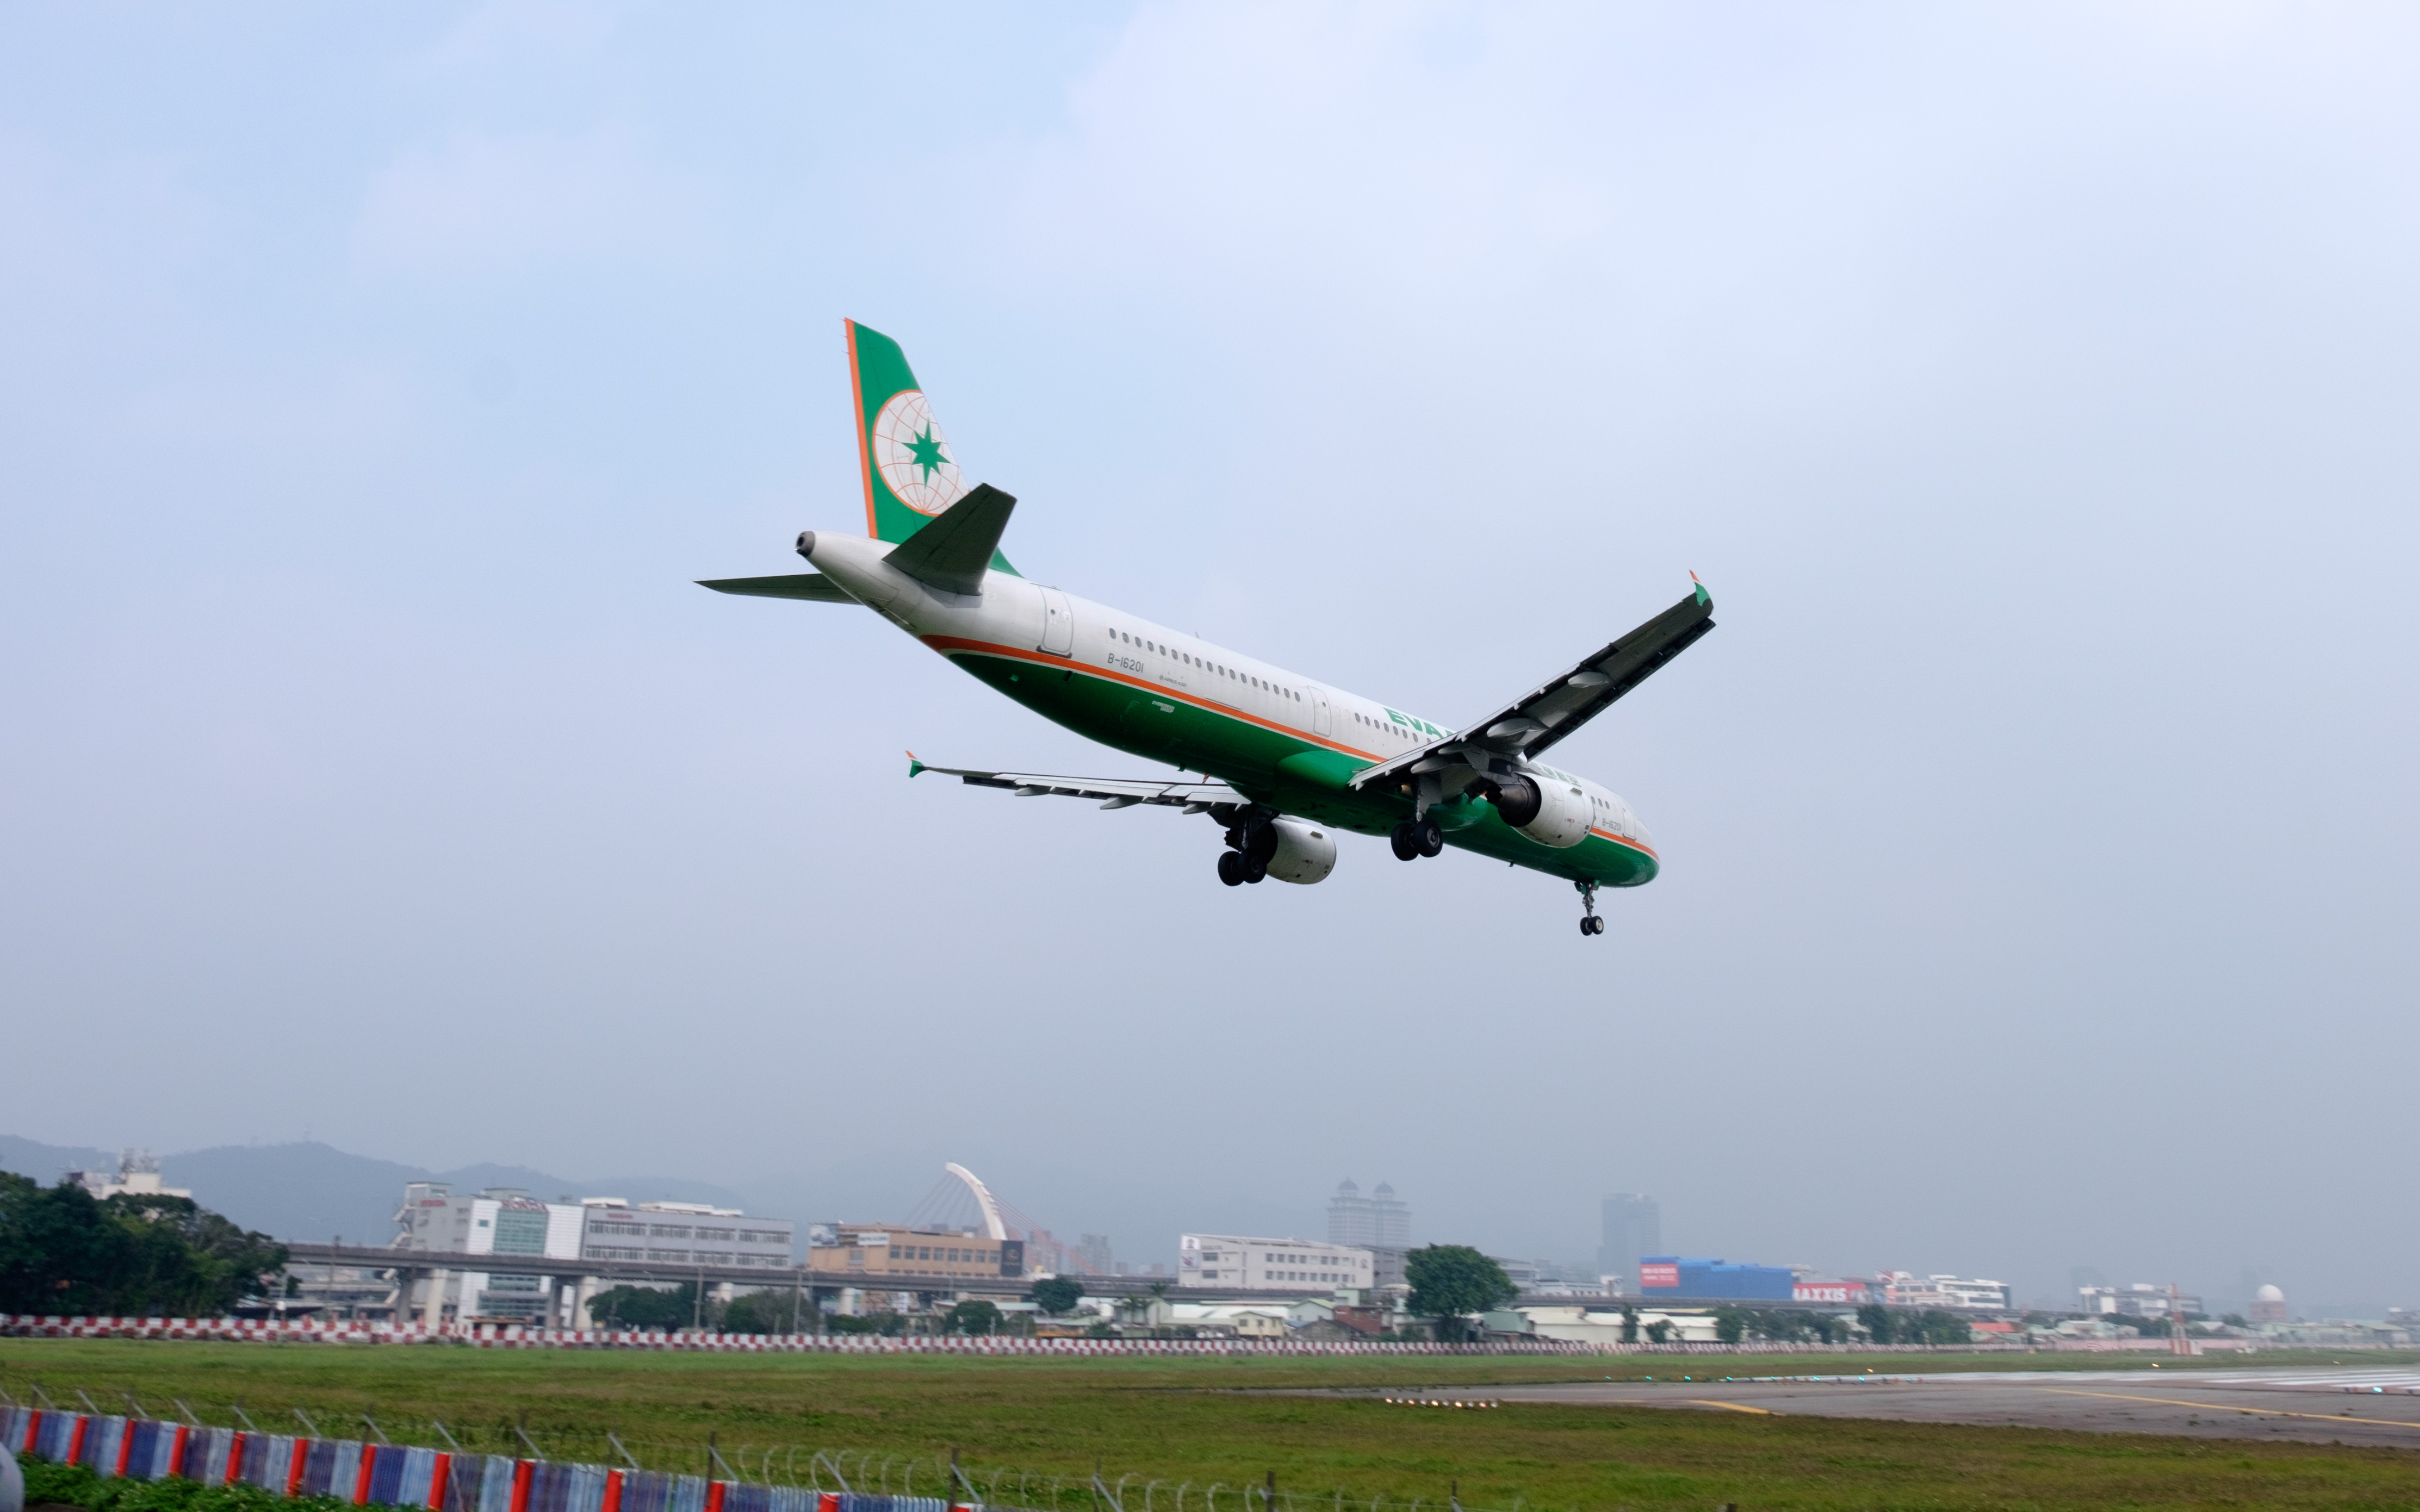 EVA Air – Airbus A31-200 ved landing i Taipei Songshan Airport. (Foto: Commons Wikimedia)